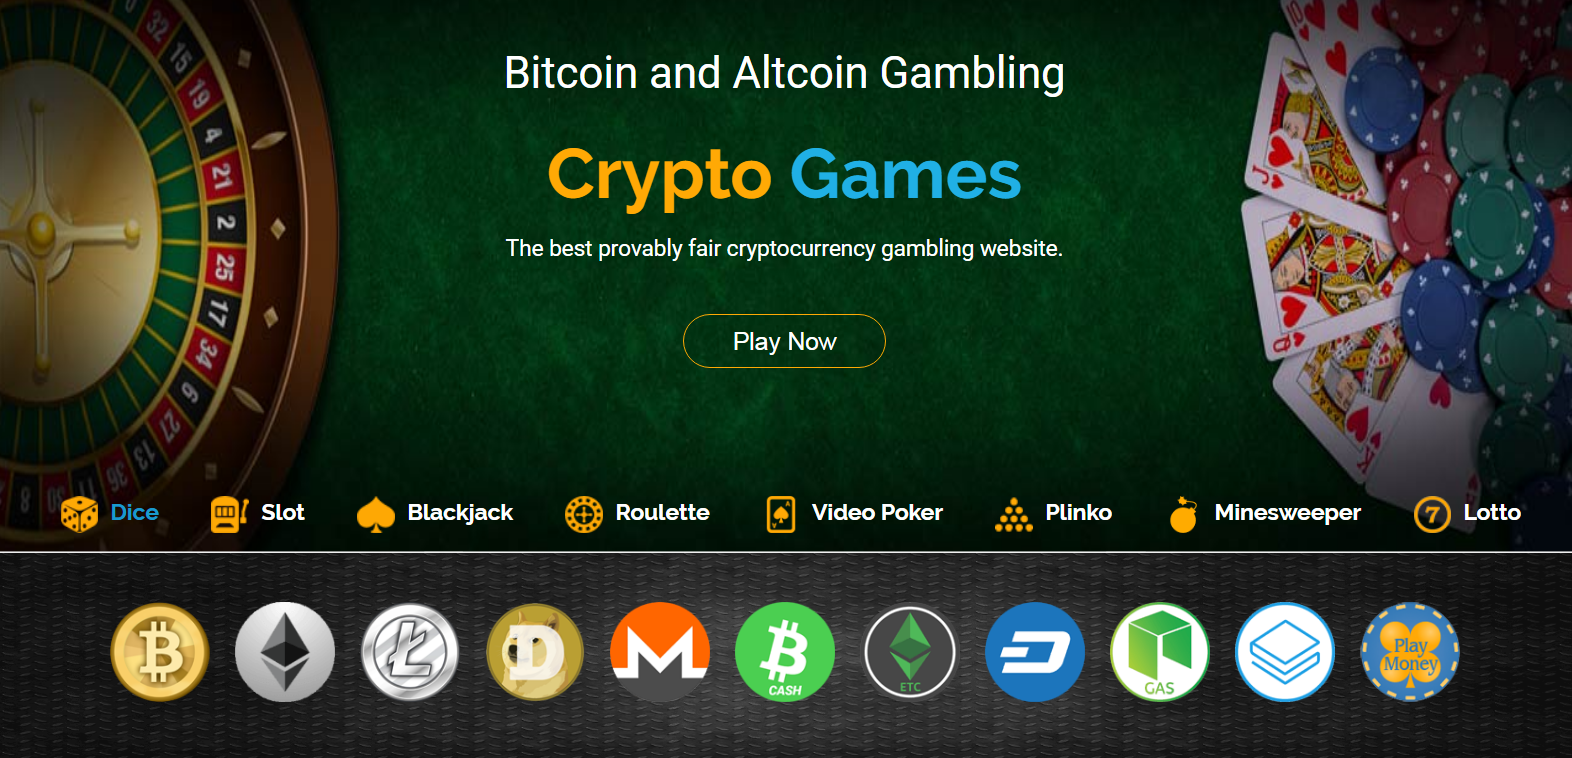 crytpo games - CryptoGames: An exhilarating world of fun games and tempting rewards beckons you!